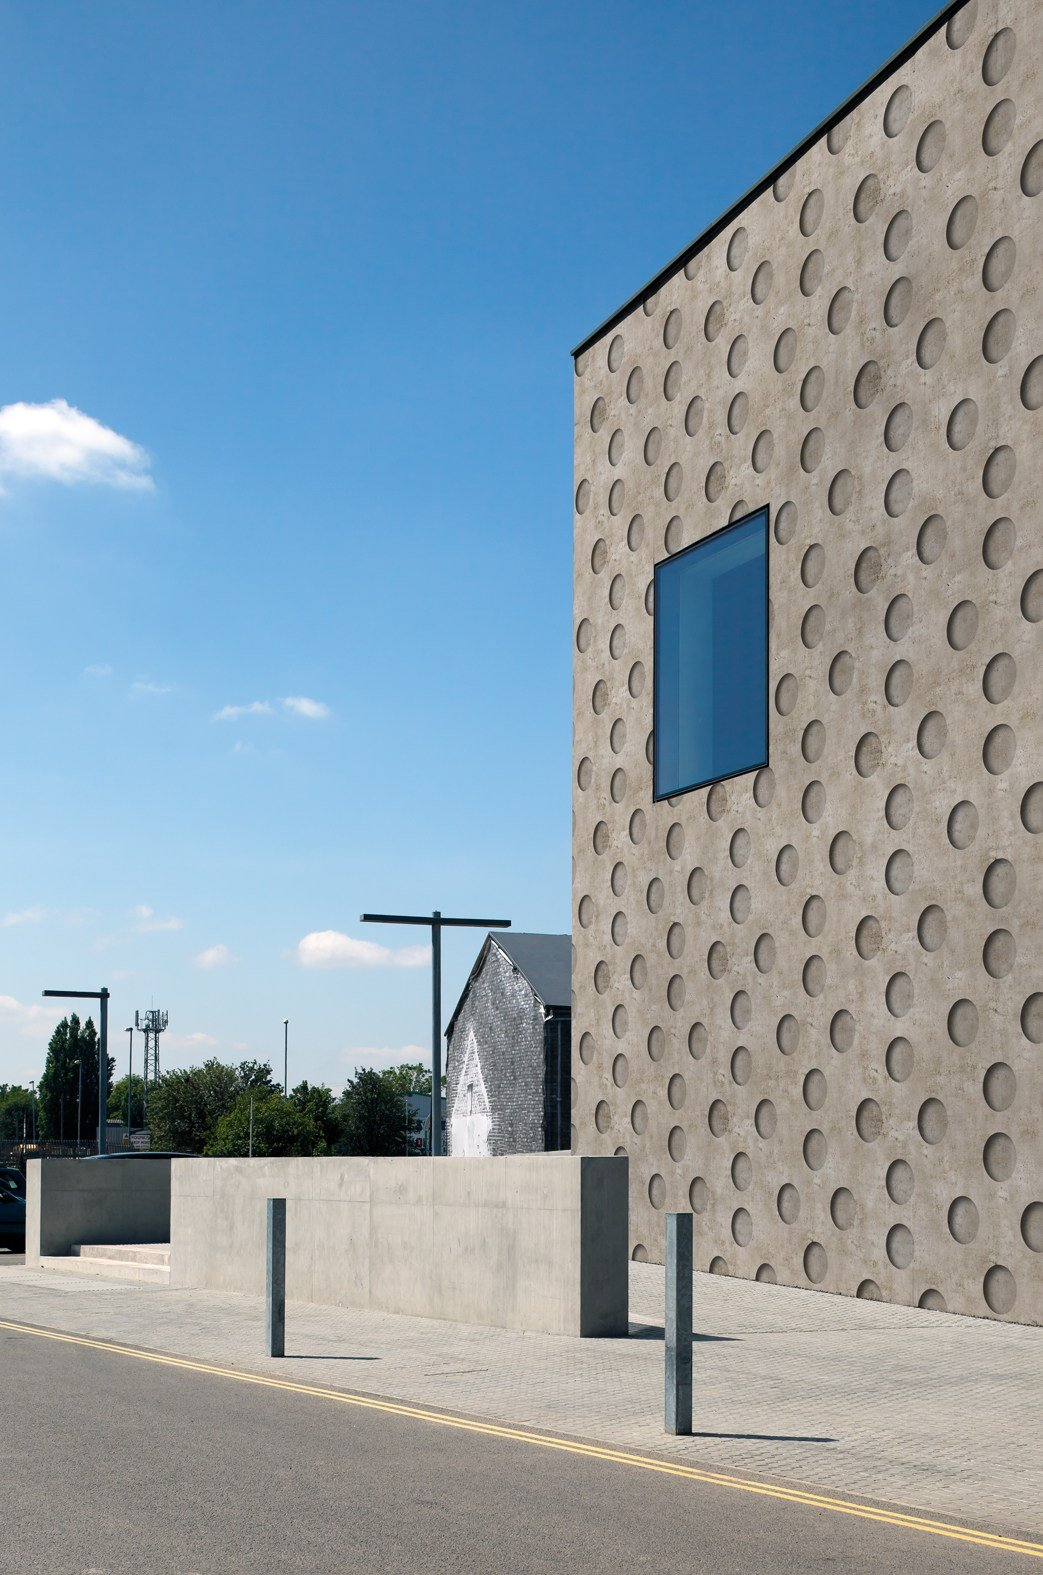 Wall And Deco Outdoor Wallpaper : Dotted outdoor wallpaper negative by wall dec? design bpm